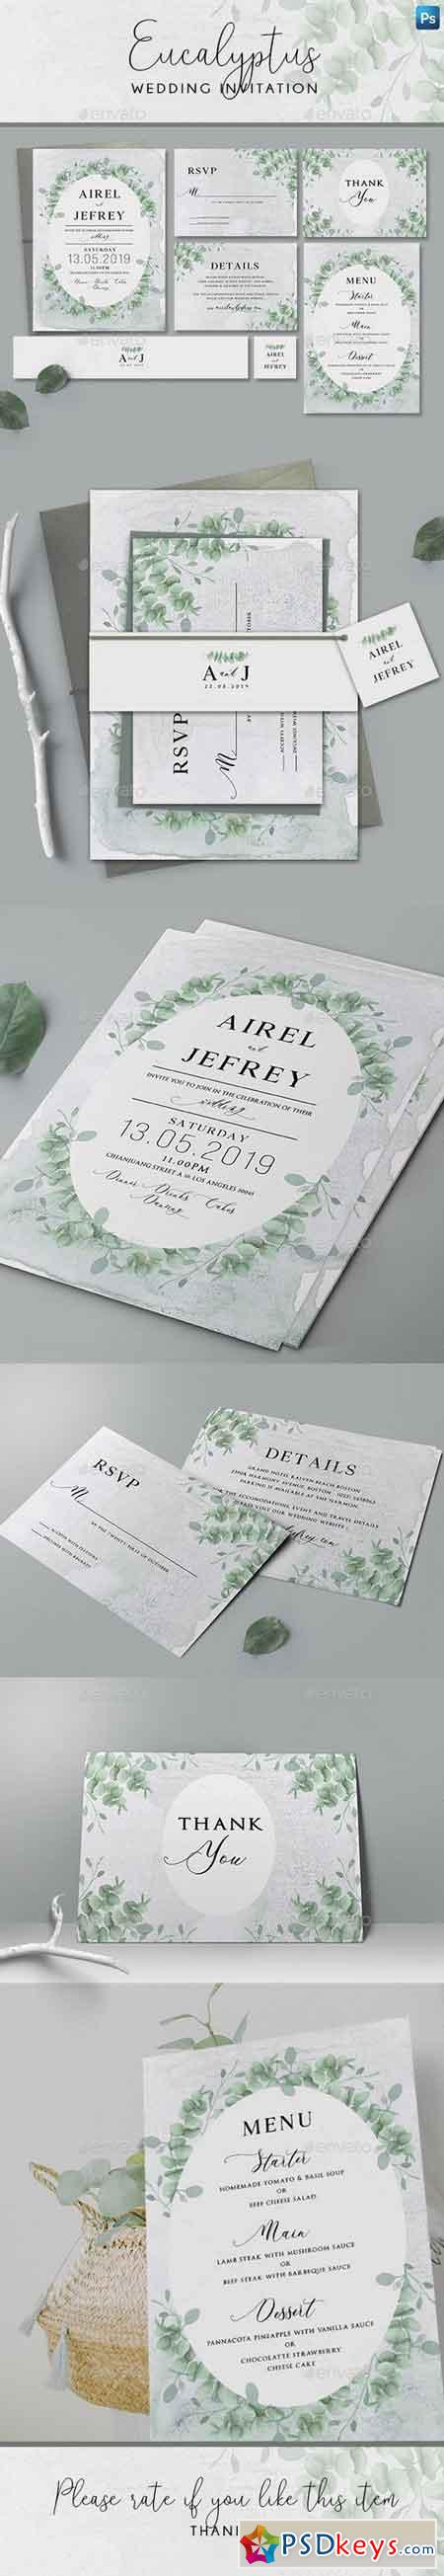 Eucalyptus Wedding Invitation 22386017